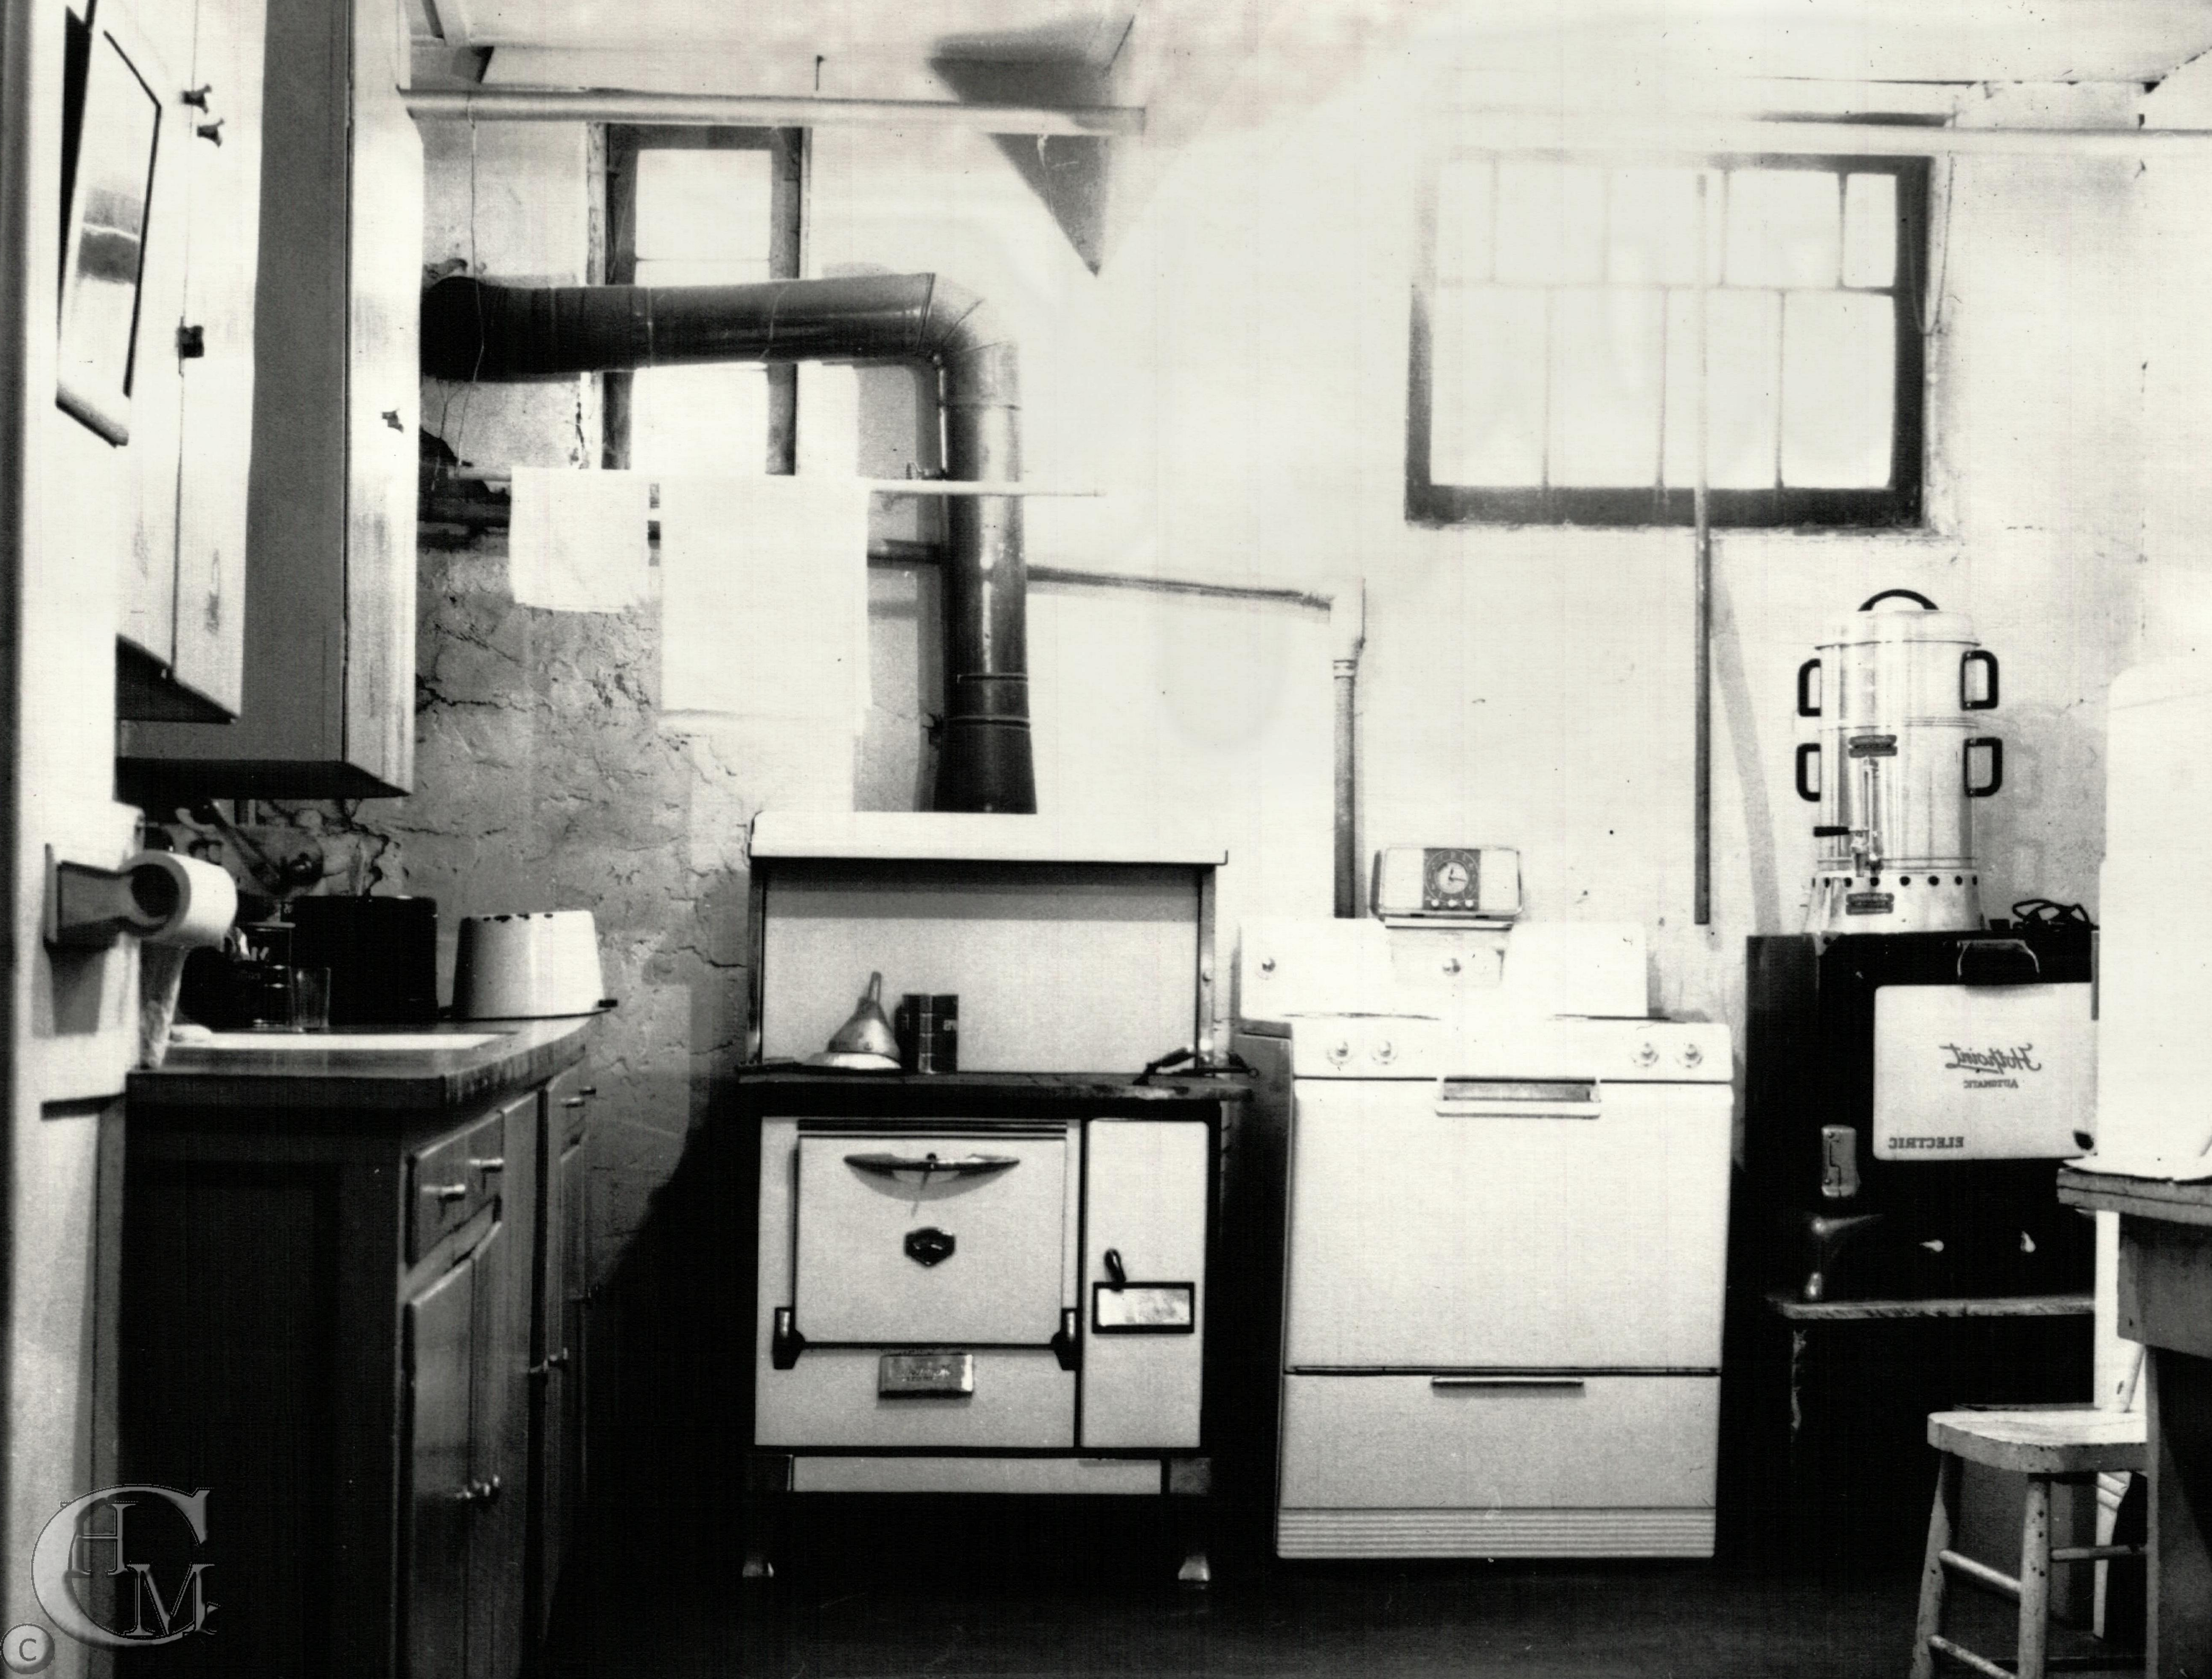 The kitchen in the basement of the church